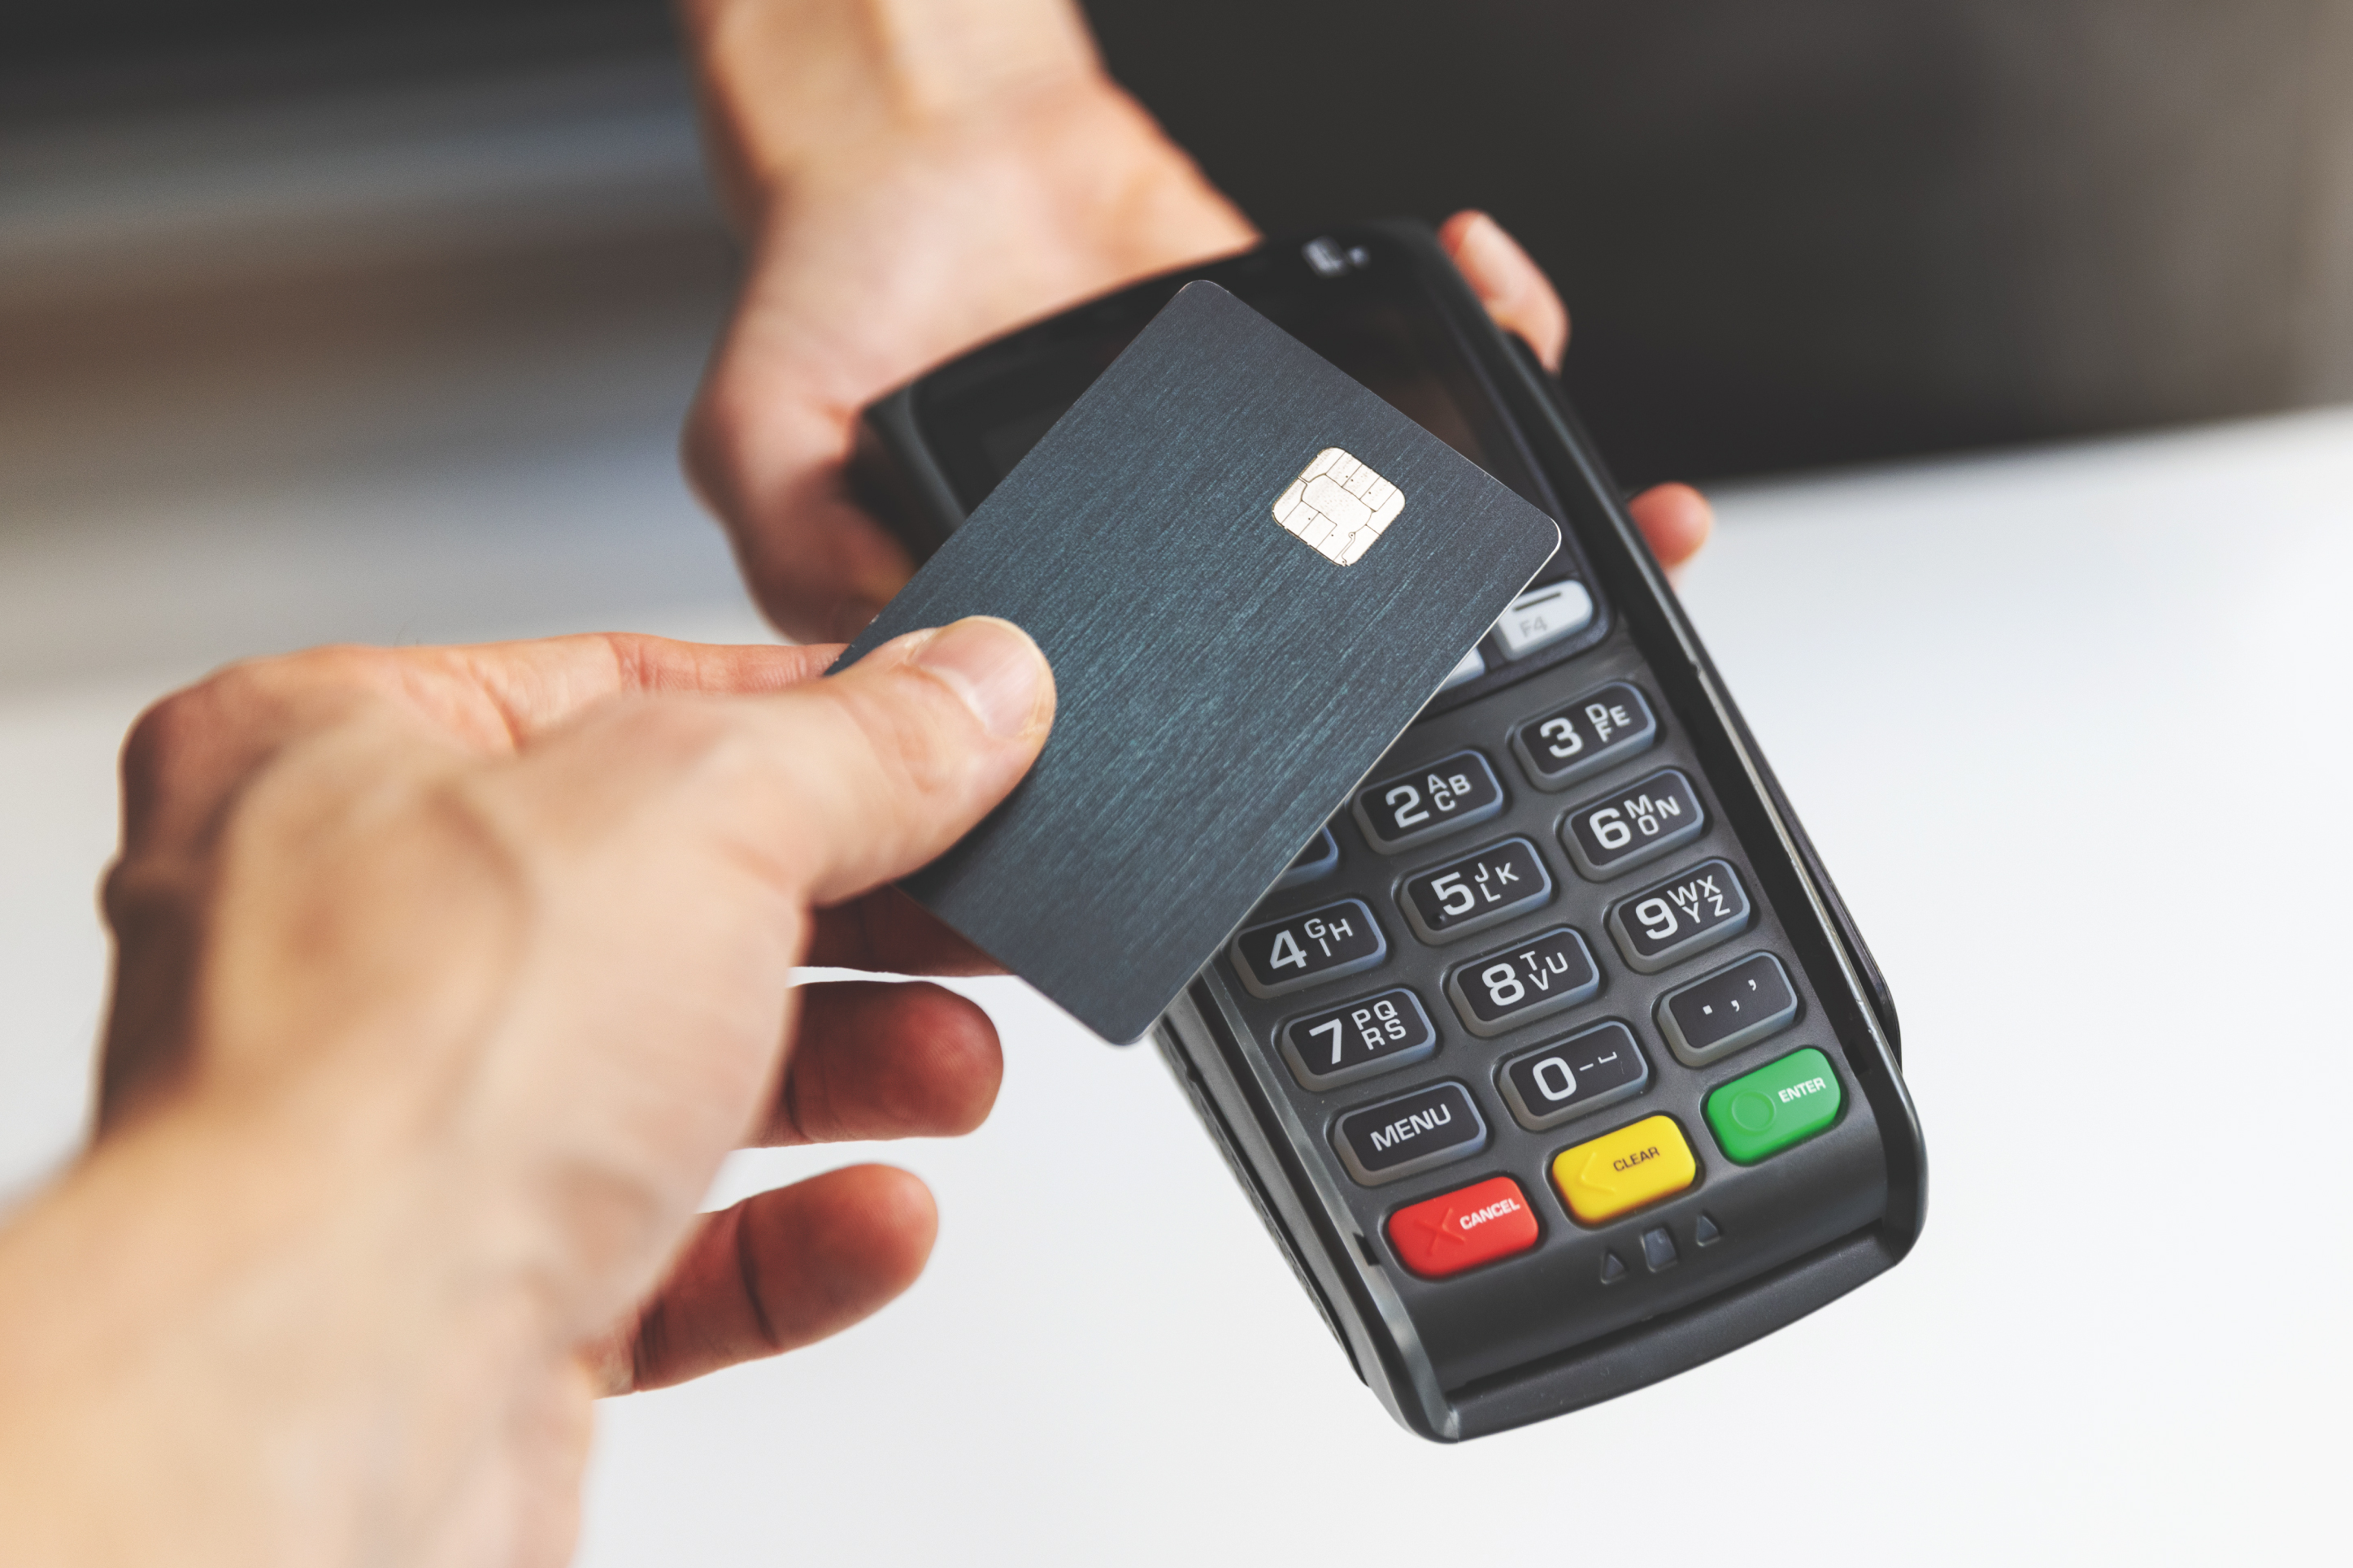 person using contactless payment with their credit card